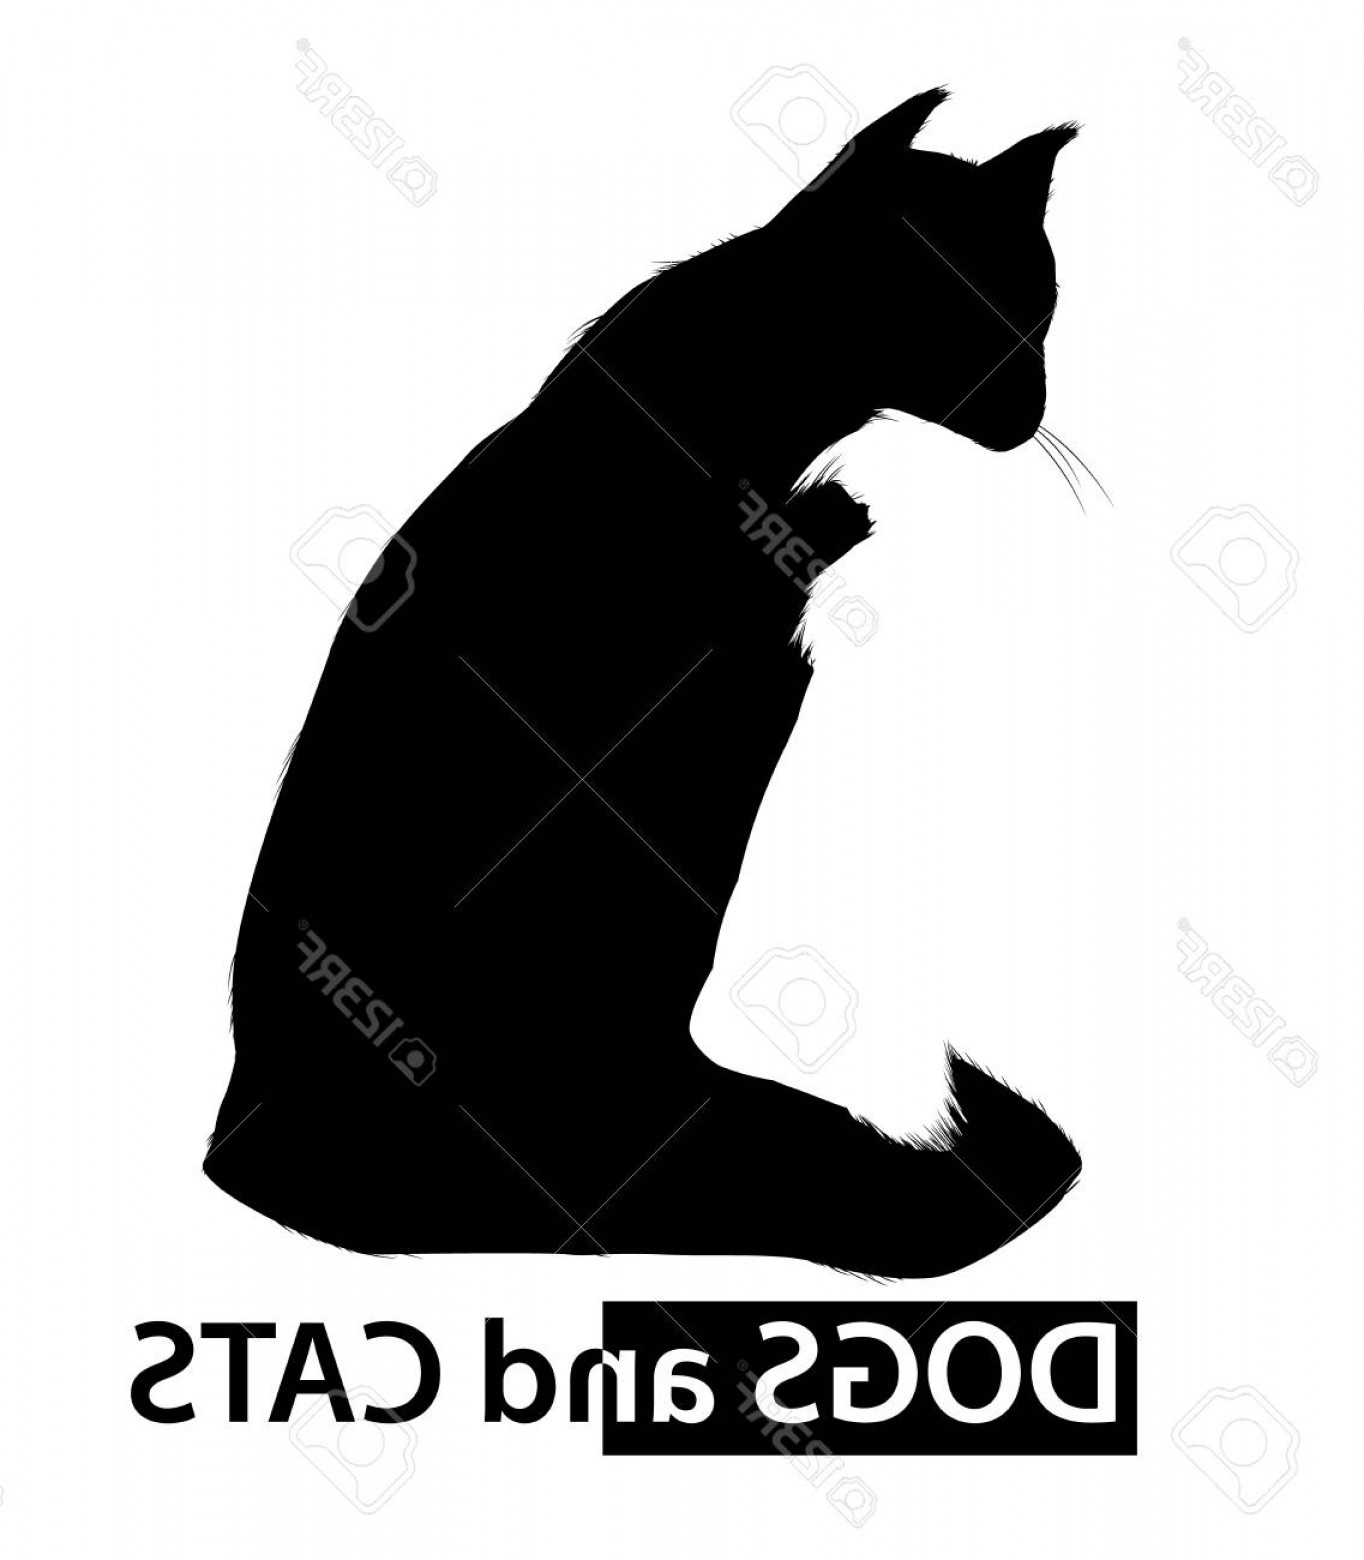 Black And White Negative Vector: Photostock Vector Dog And Cat Silhouettes With Negative Space Effect Black And White Vector